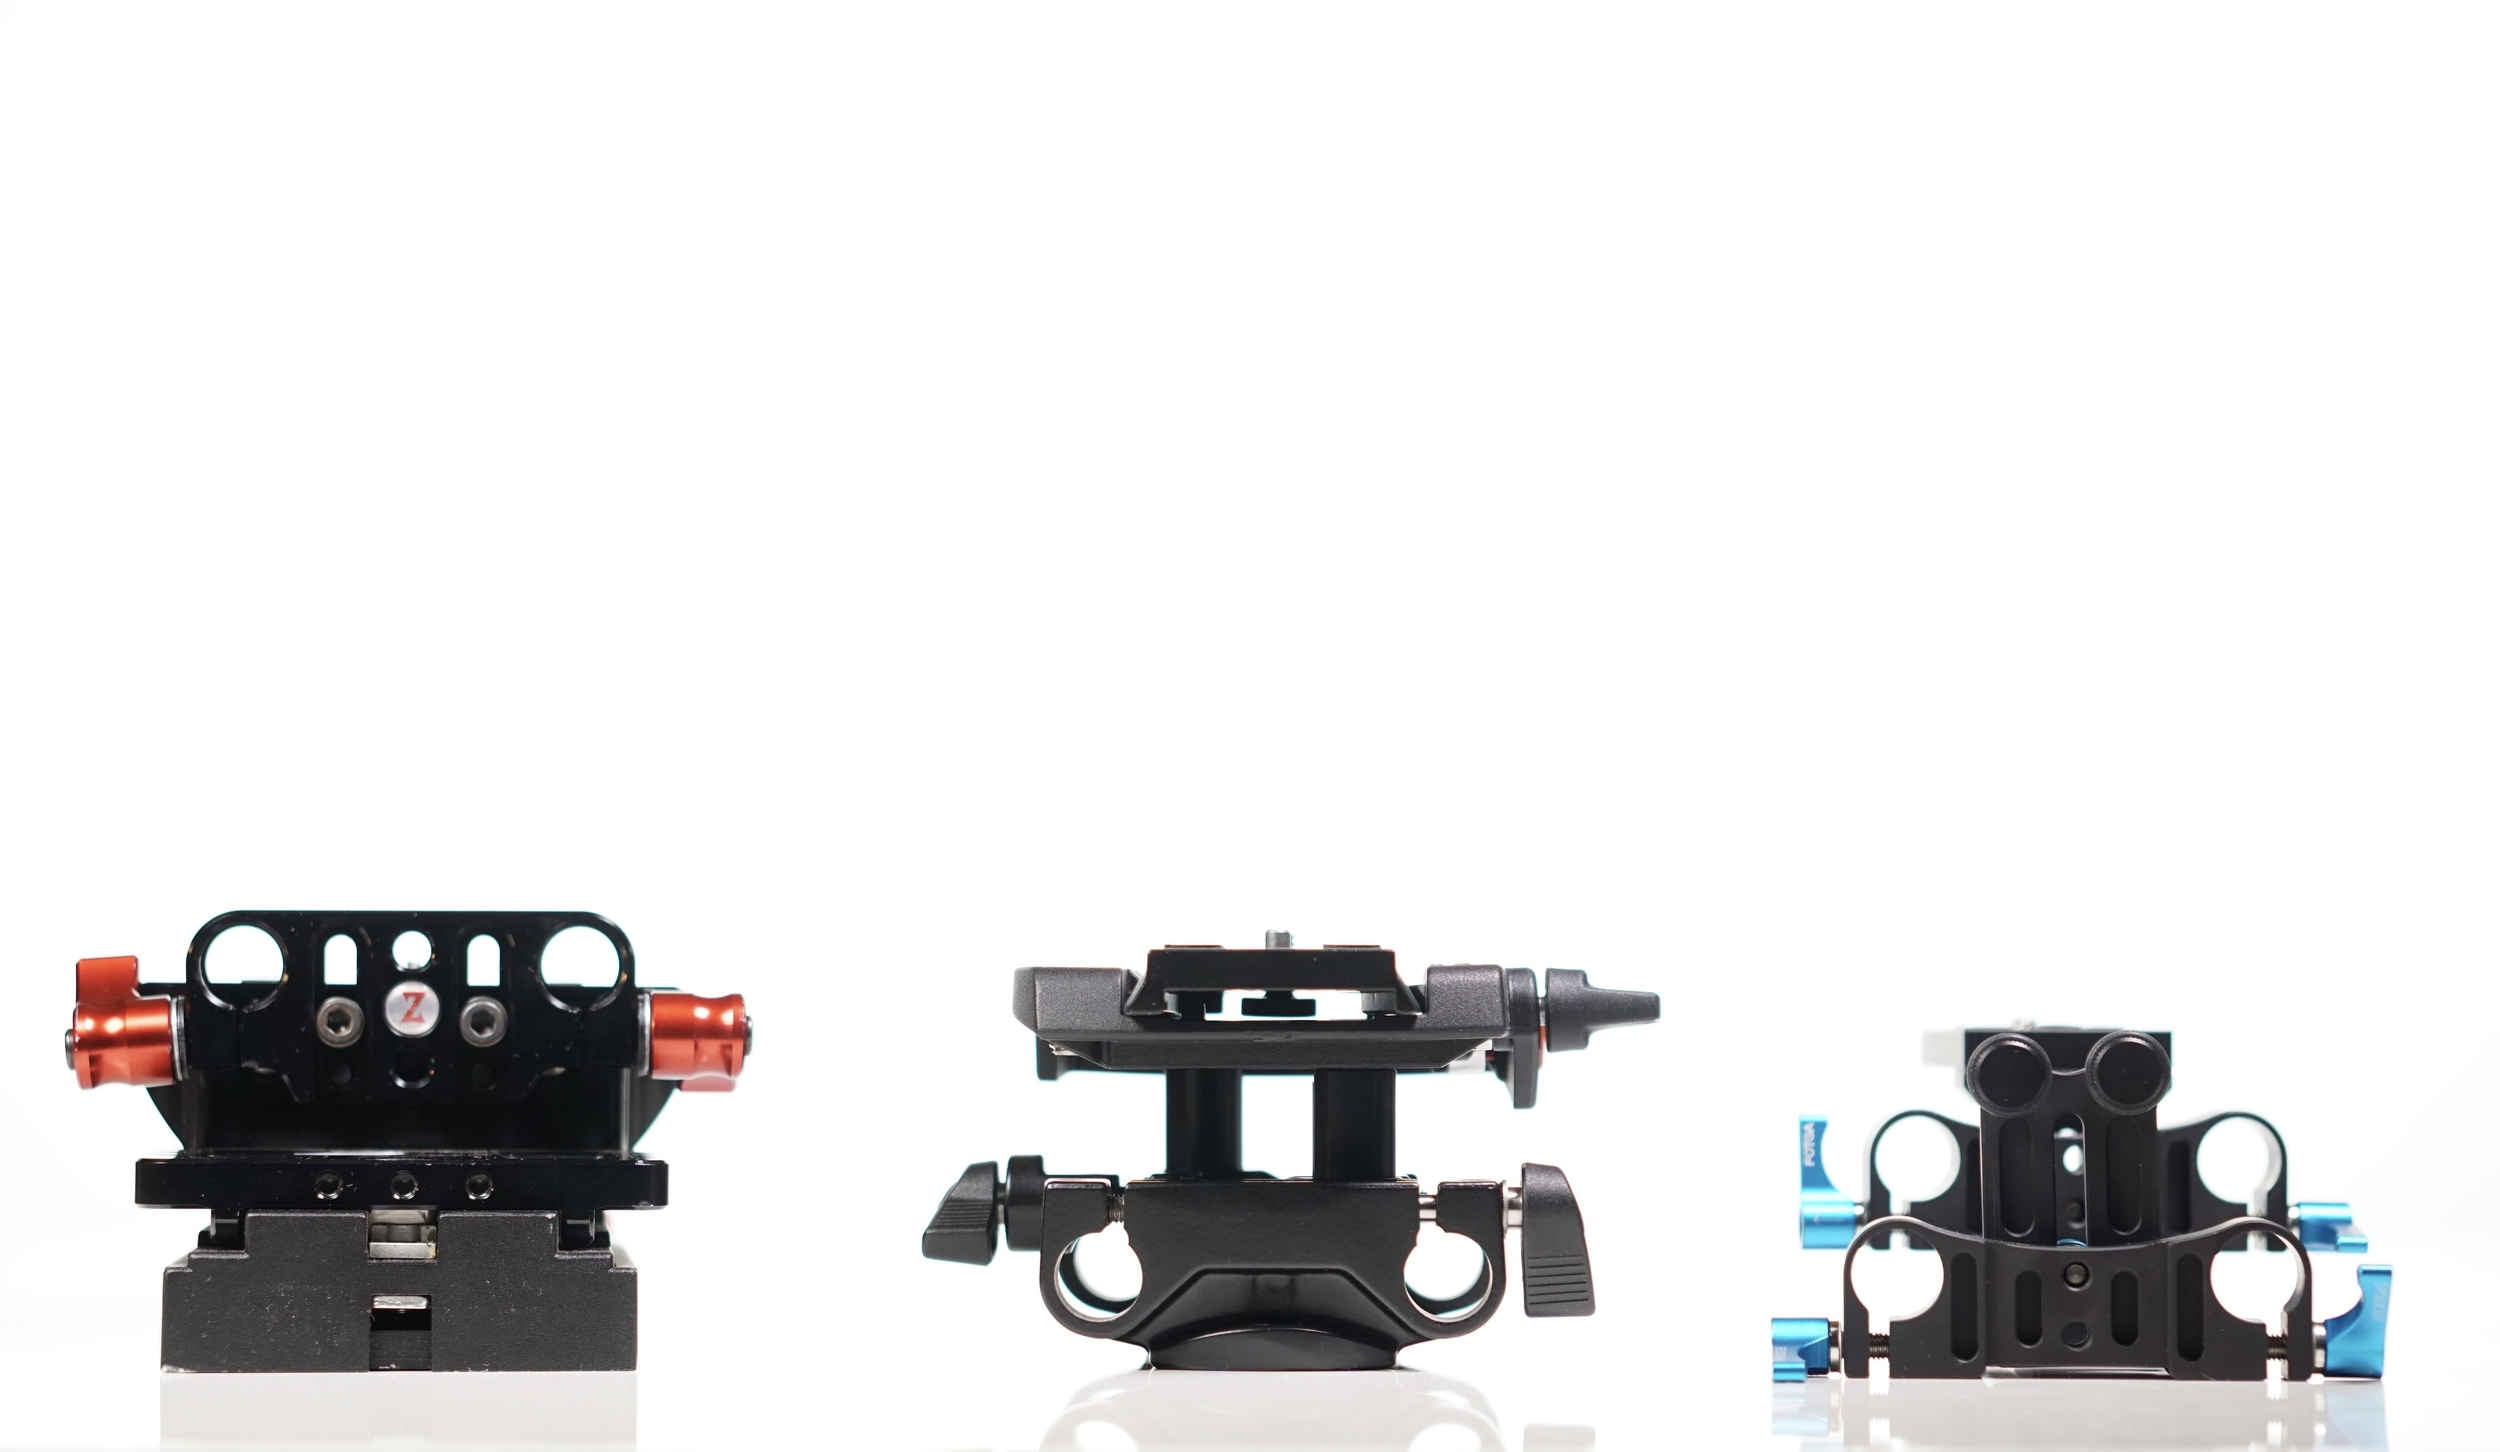 Left to right:  Zacuto ,  Sachtler  and  FOTGA . They all use 15mm rods, they all rise to about the same height -- but that's pretty much where the similarities end.